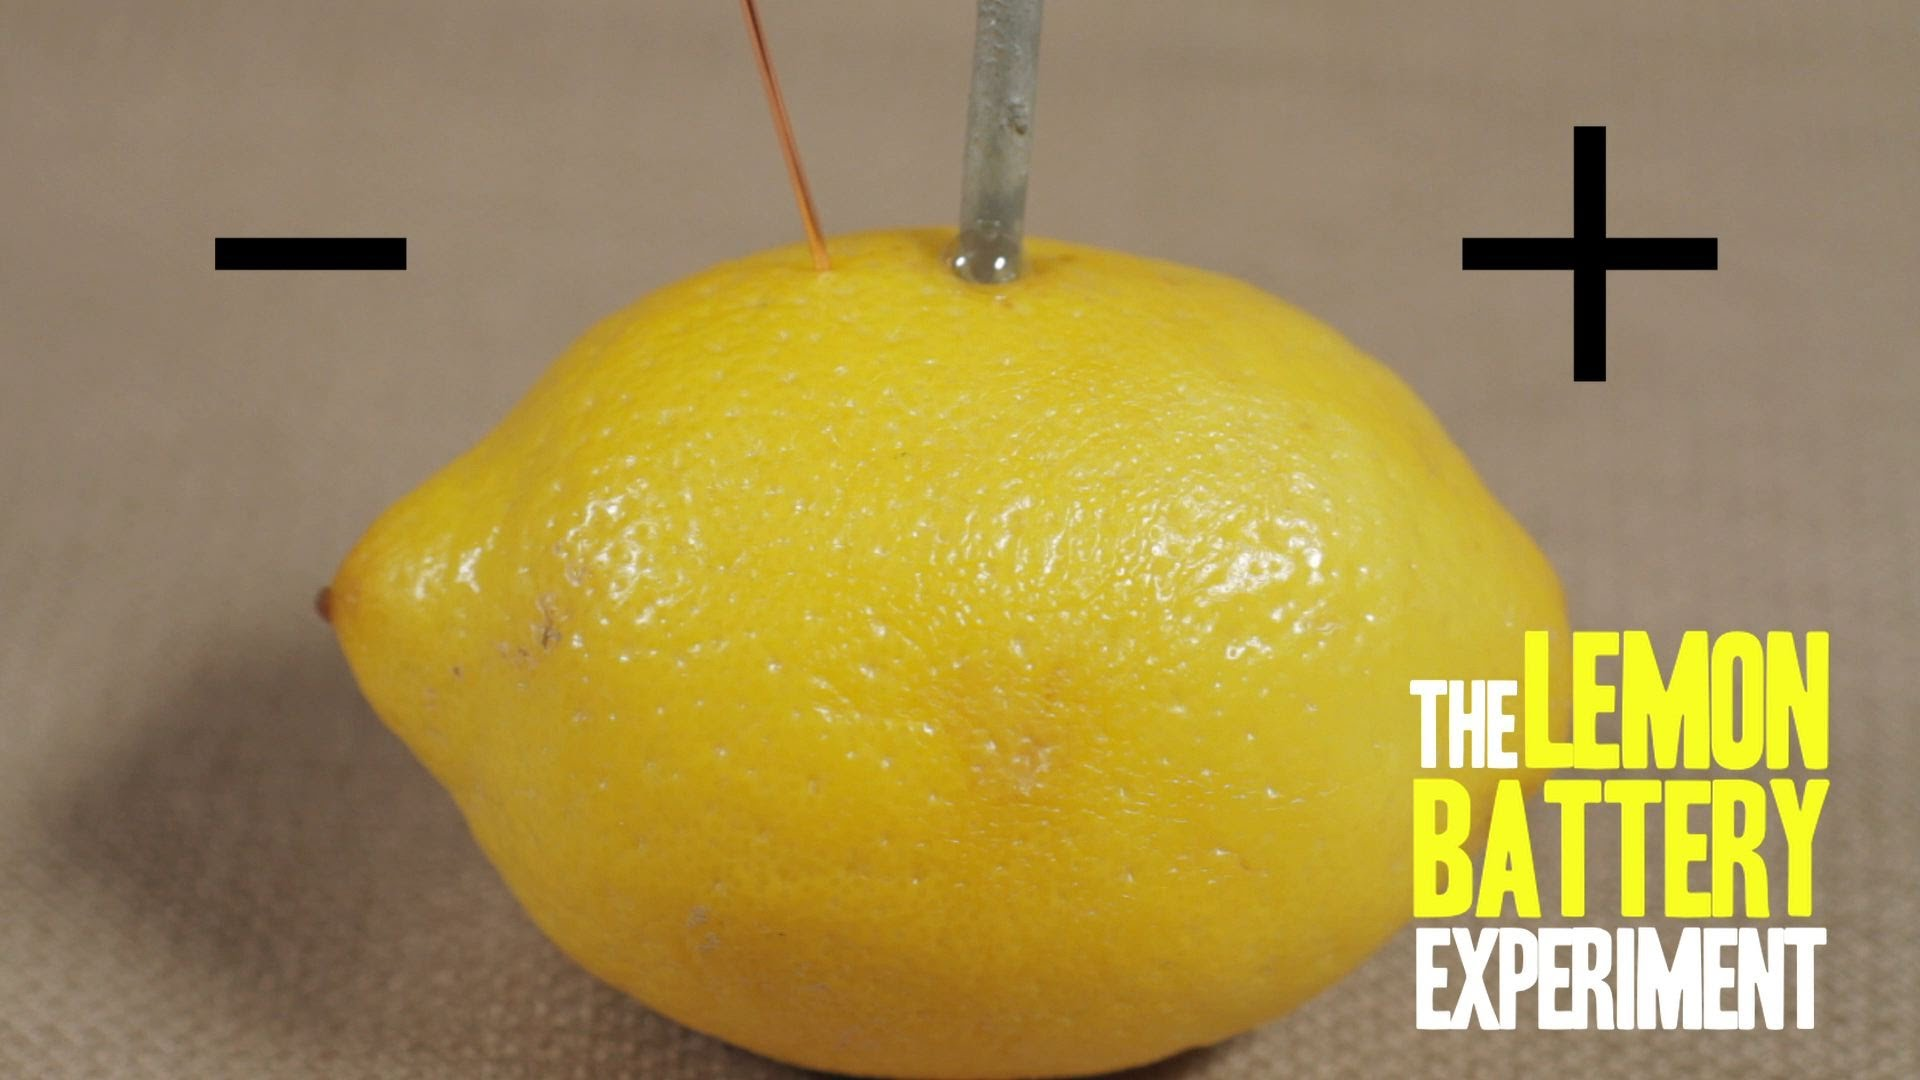 lemon battery research paper These are the sources and citations used to research fruit batteries this bibliography was generated on cite this for me on wednesday, may 13, 2015.